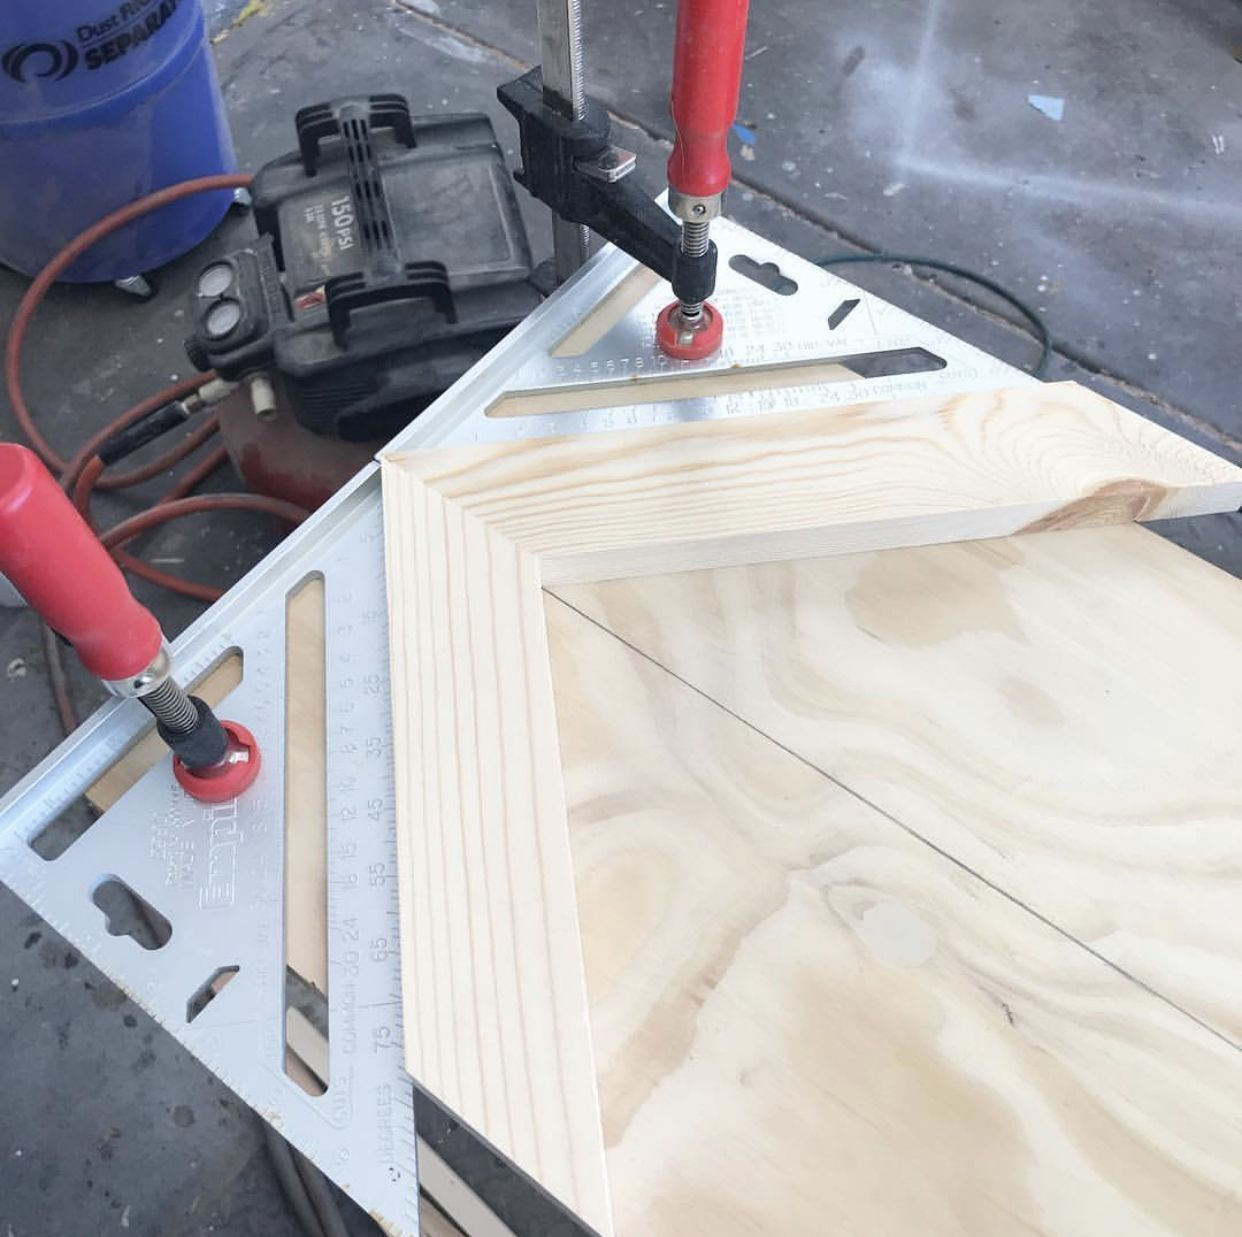 Jig - Starting is the most important step to creating a chevron pattern with wood.Pattern Jig - Starting is the most important step to creating a chevron pattern with wood.